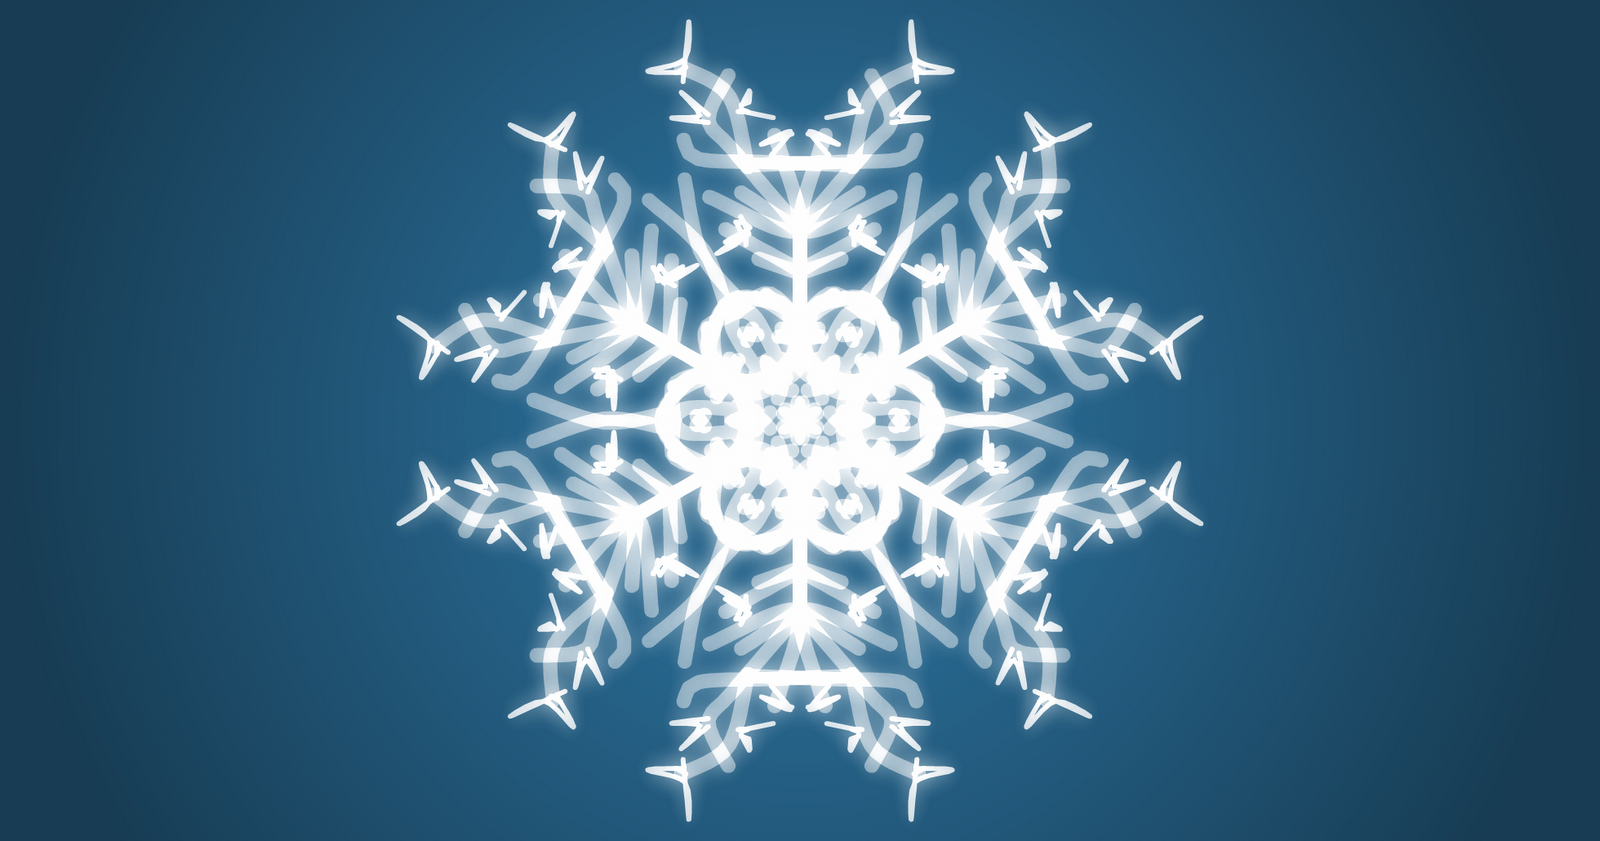 Snowflake Drawing Template -snowflakes have 6 sides so